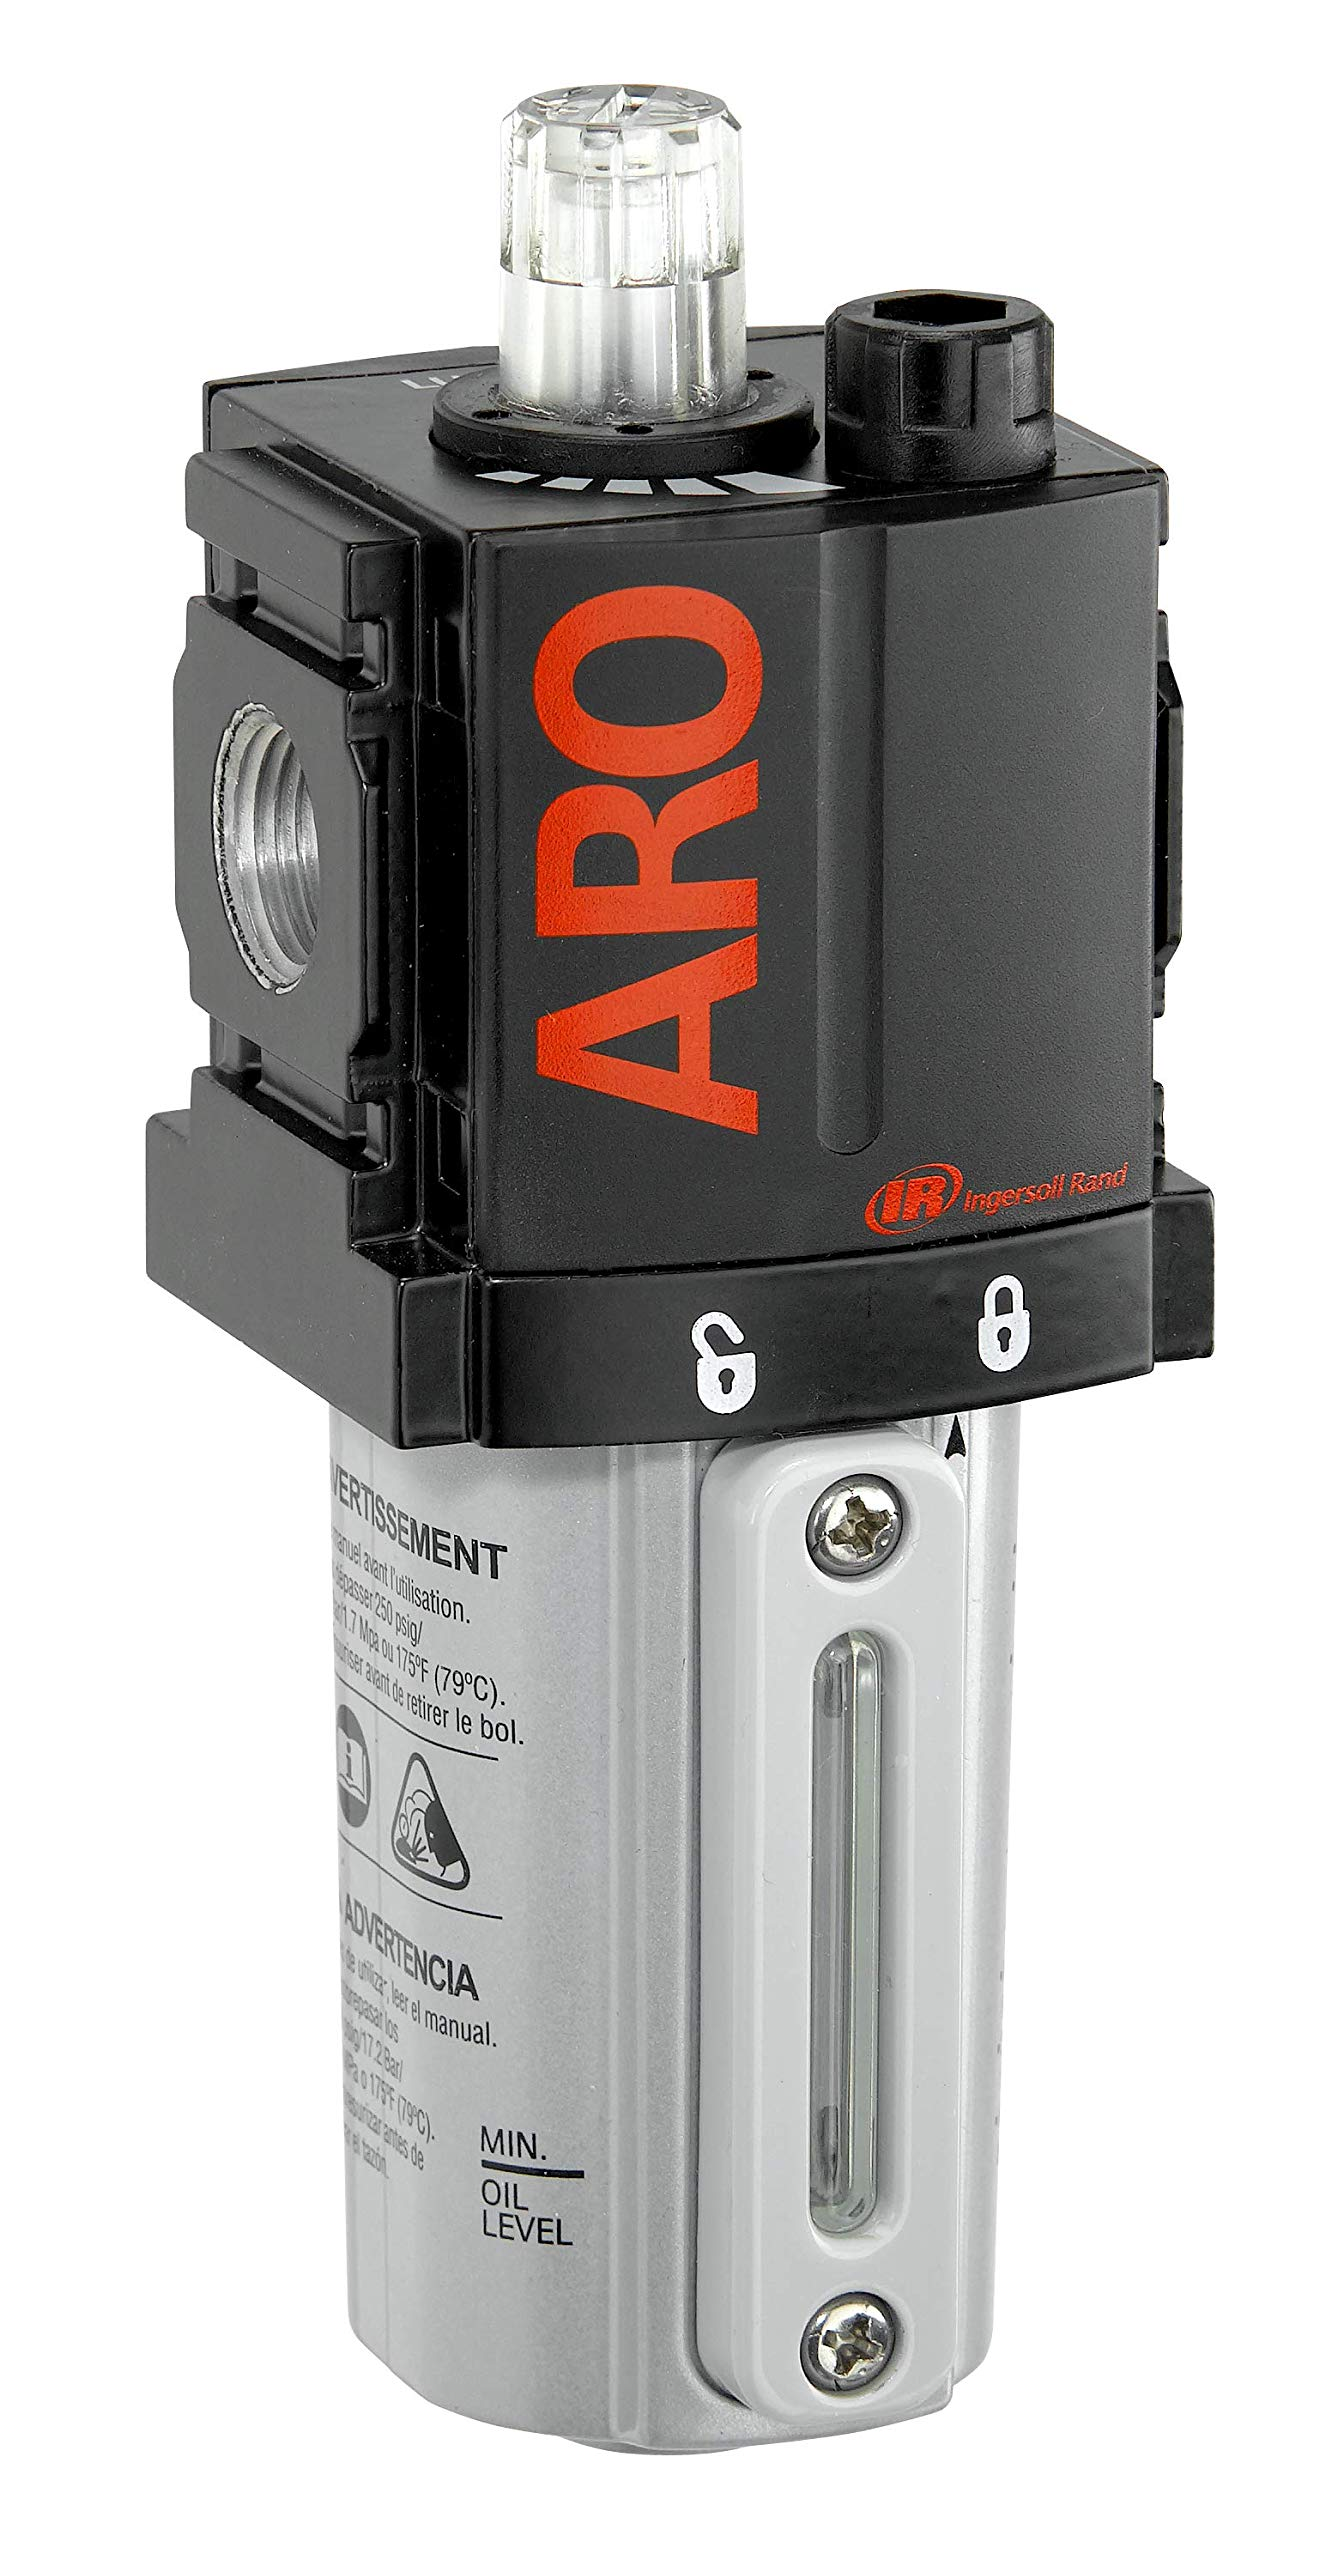 ARO L36121-100-VS Air Line Lubricator, 1/4'' NPT - 150 psi Max Inlet by Ingersoll Rand